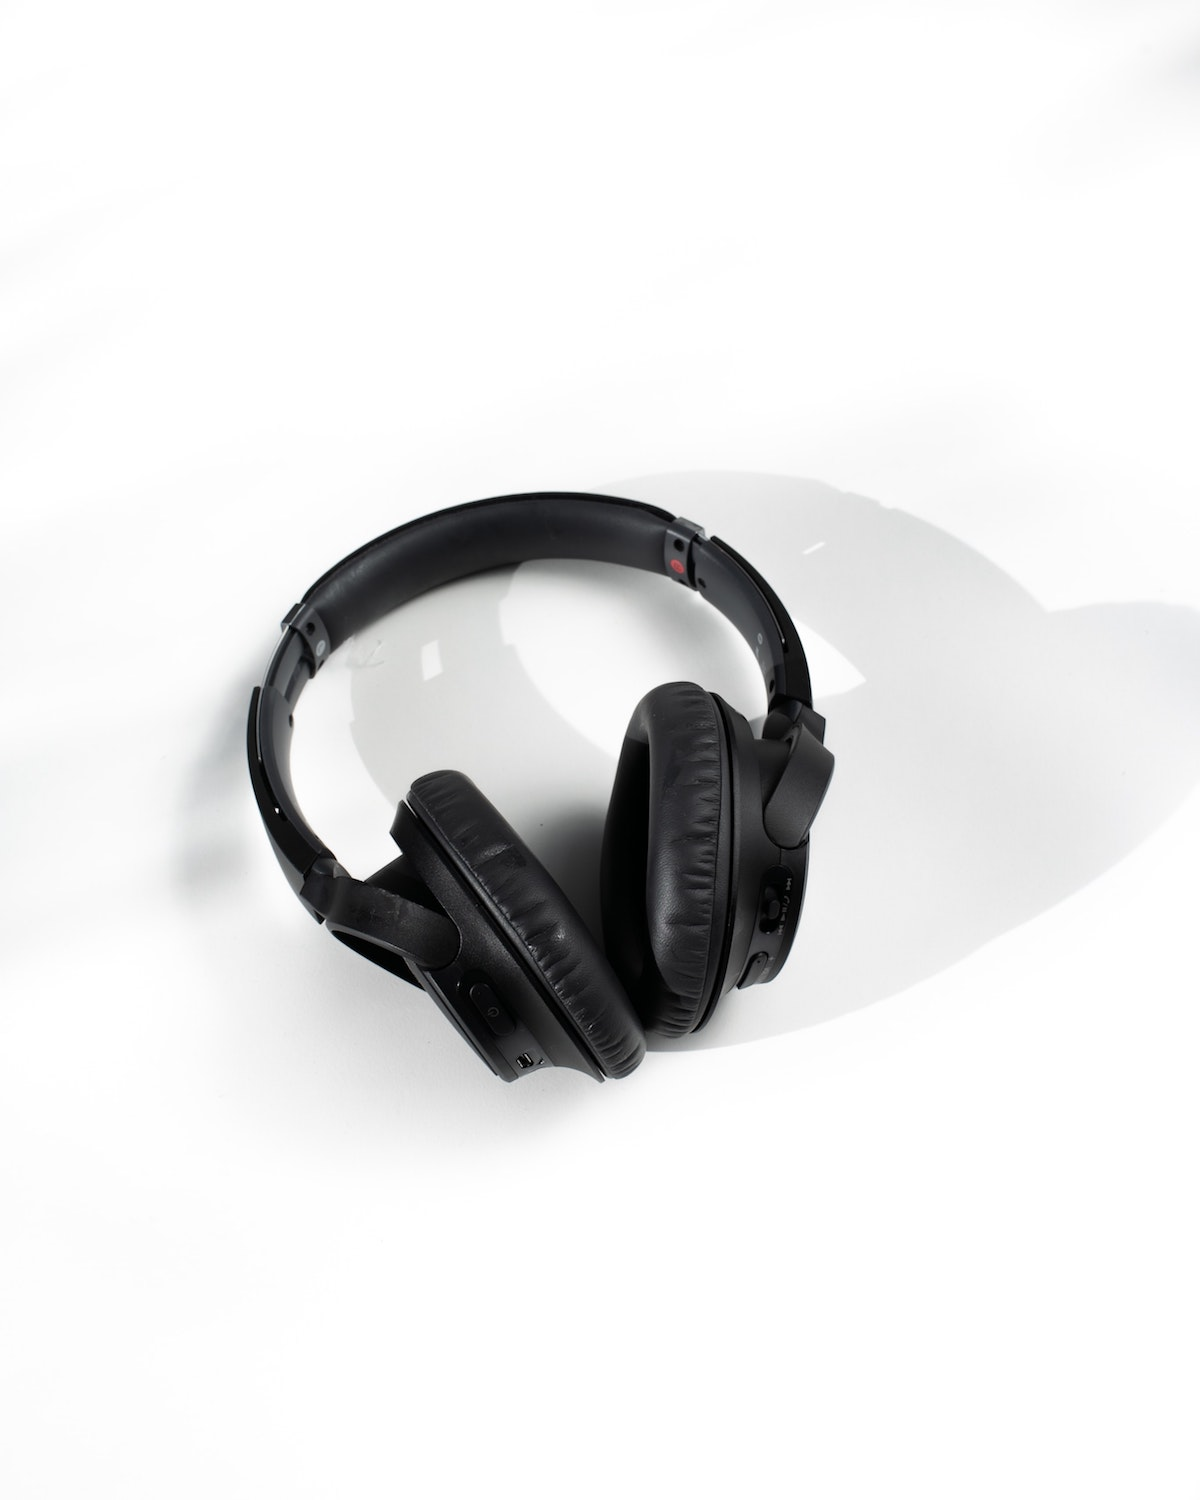 Noice Cancelling Headset in Black